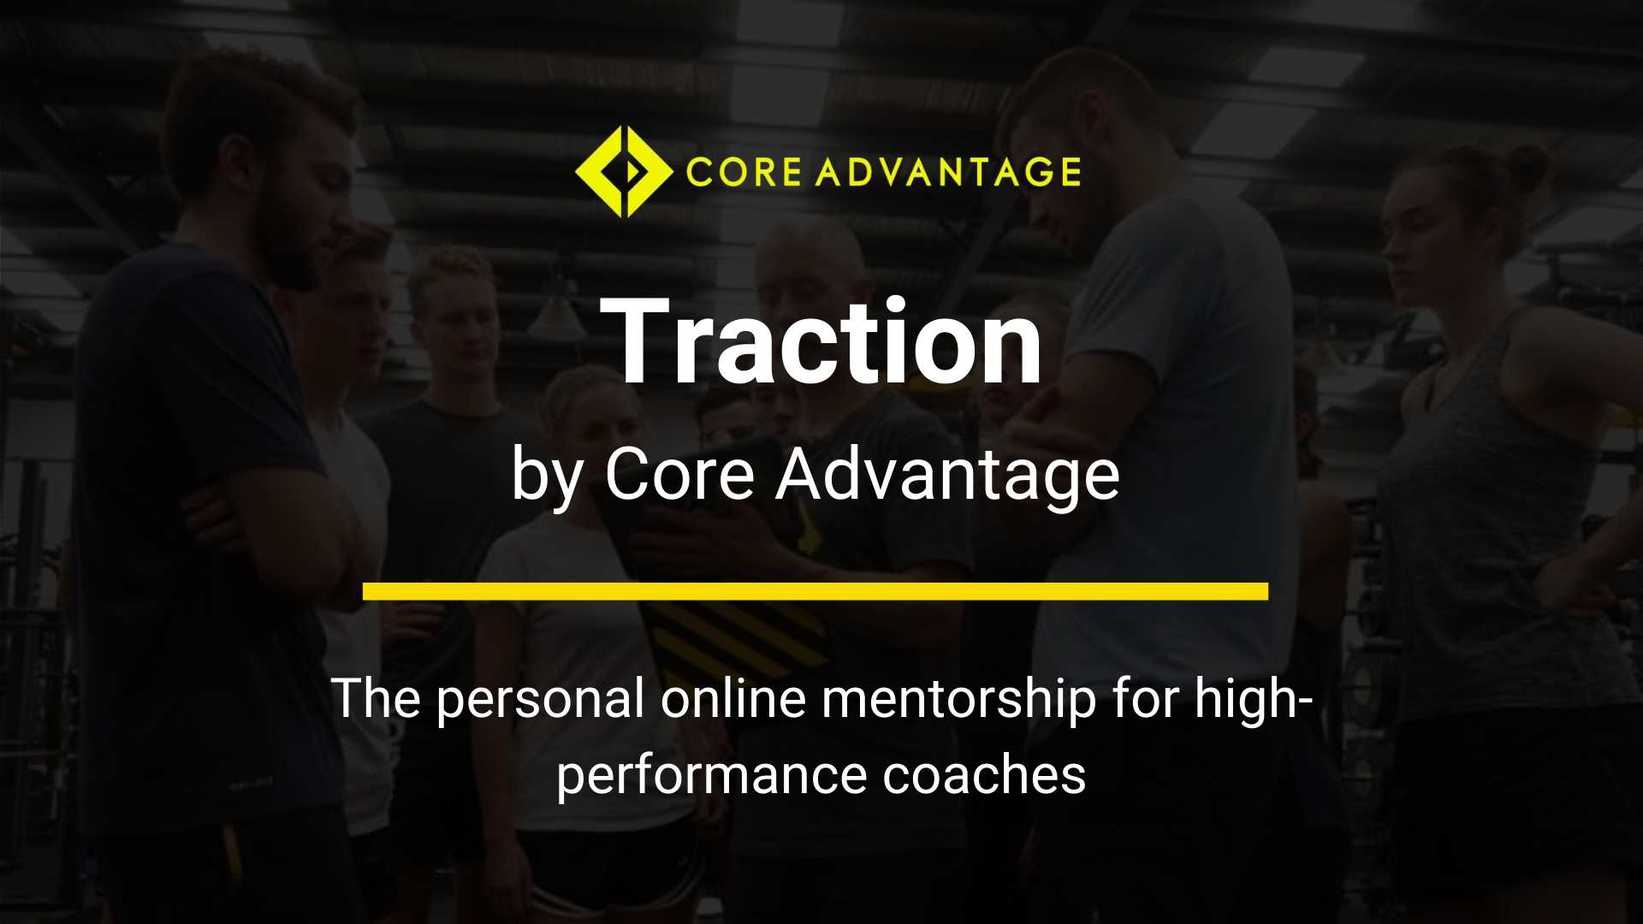 Core Advantage - Traction